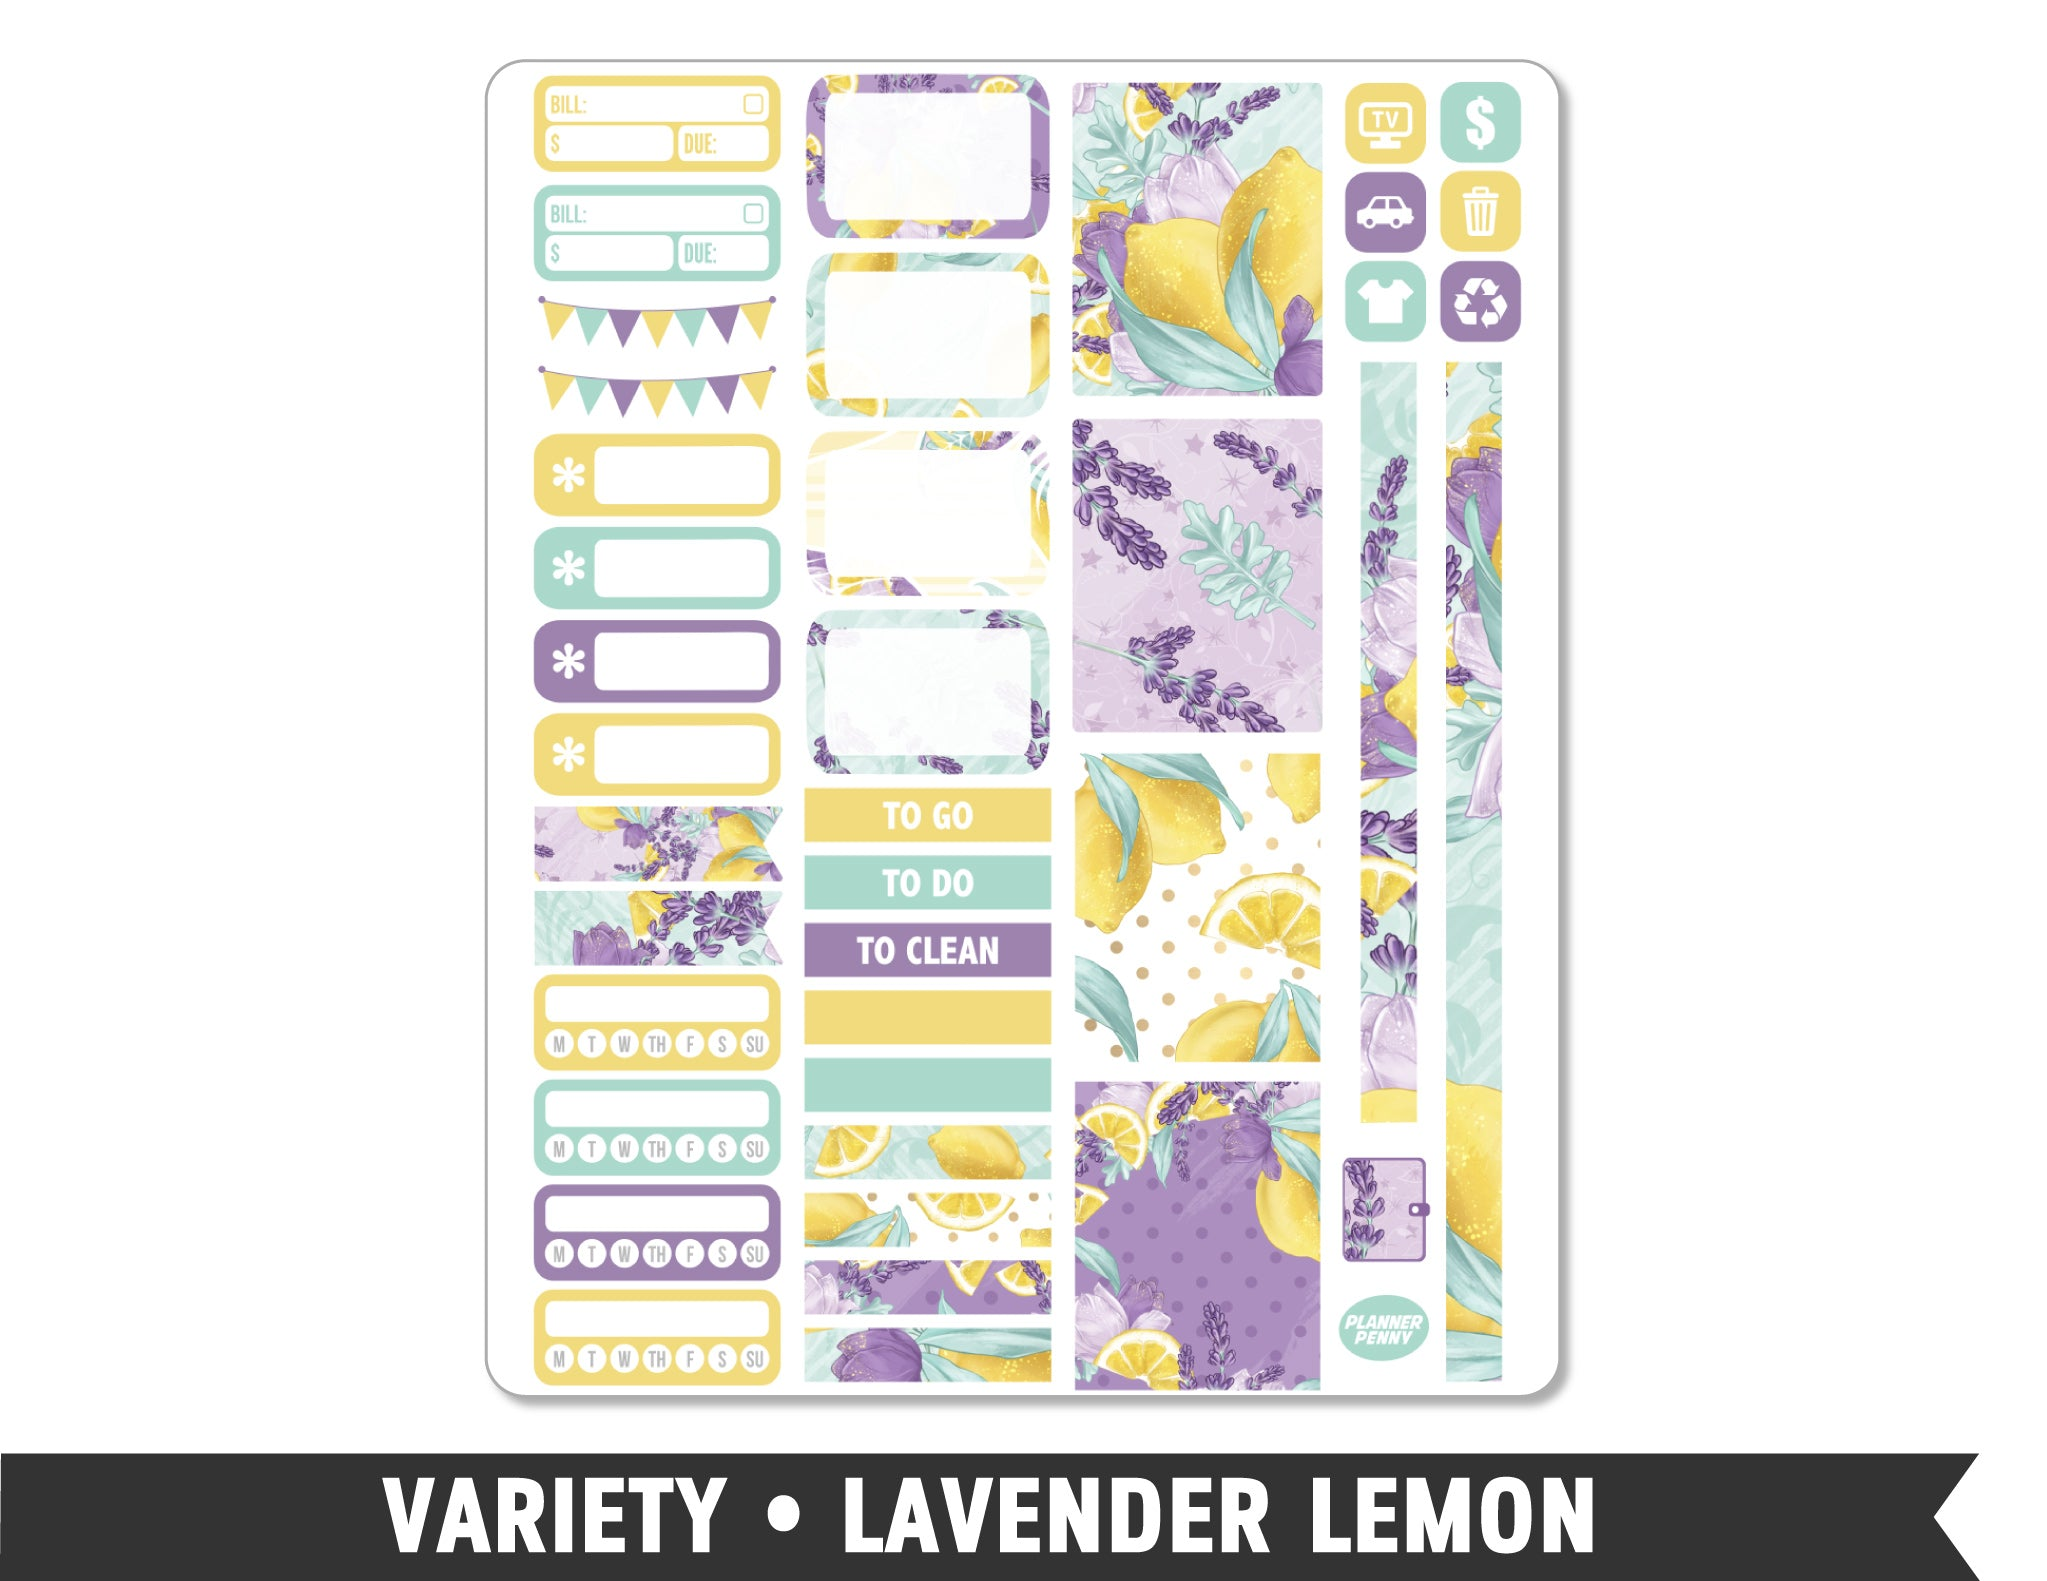 Variety • Lavender Lemon Weekly Spread Planner Stickers